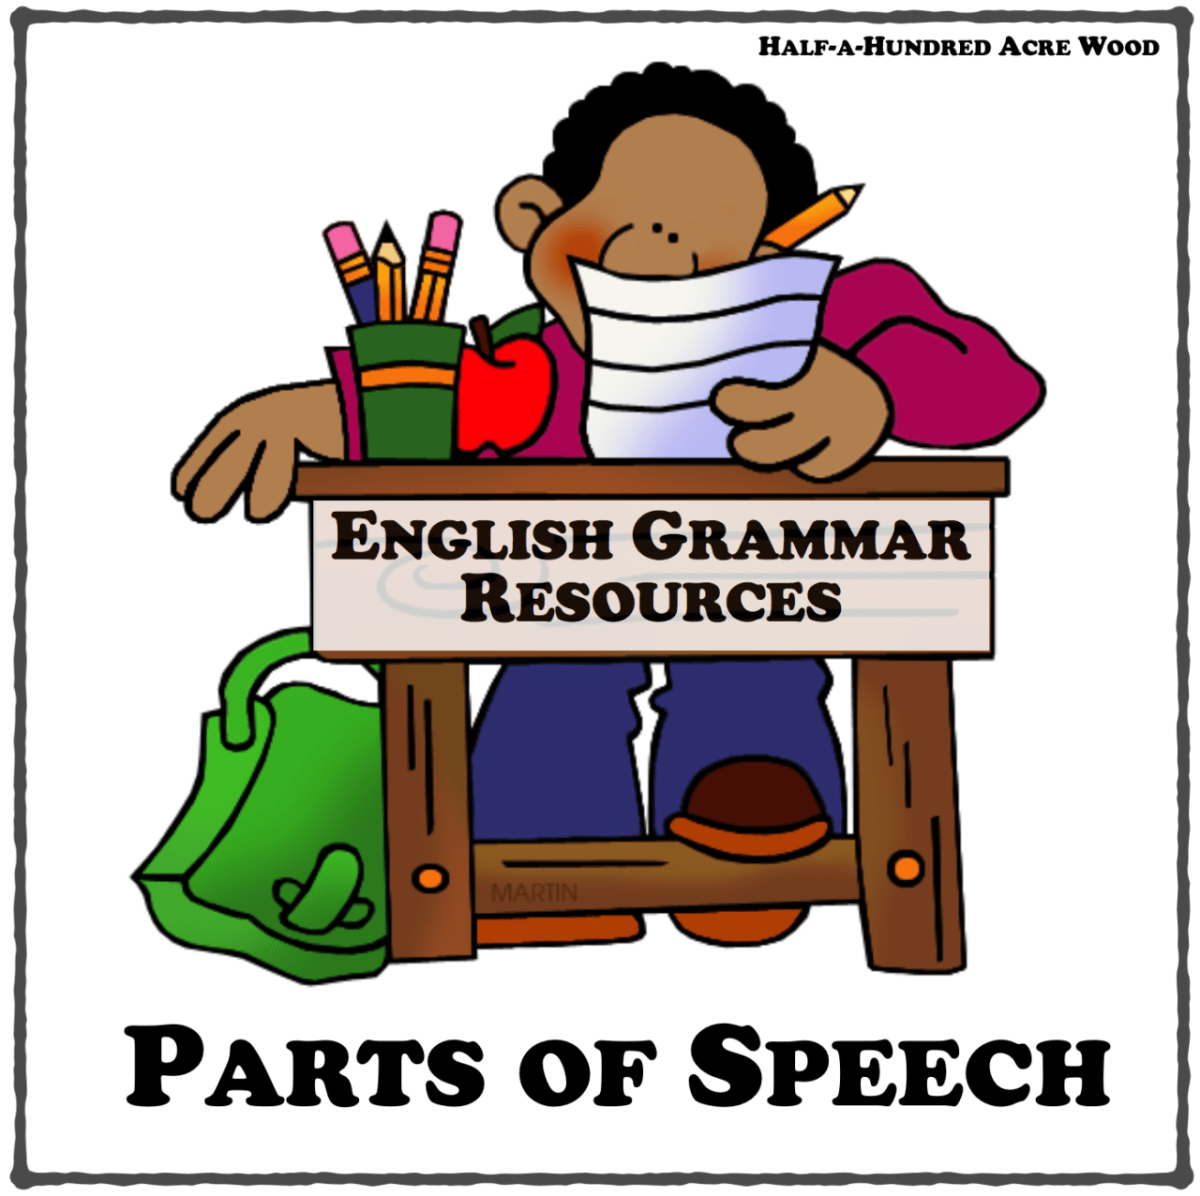 English Grammar Resources: Parts of Speech